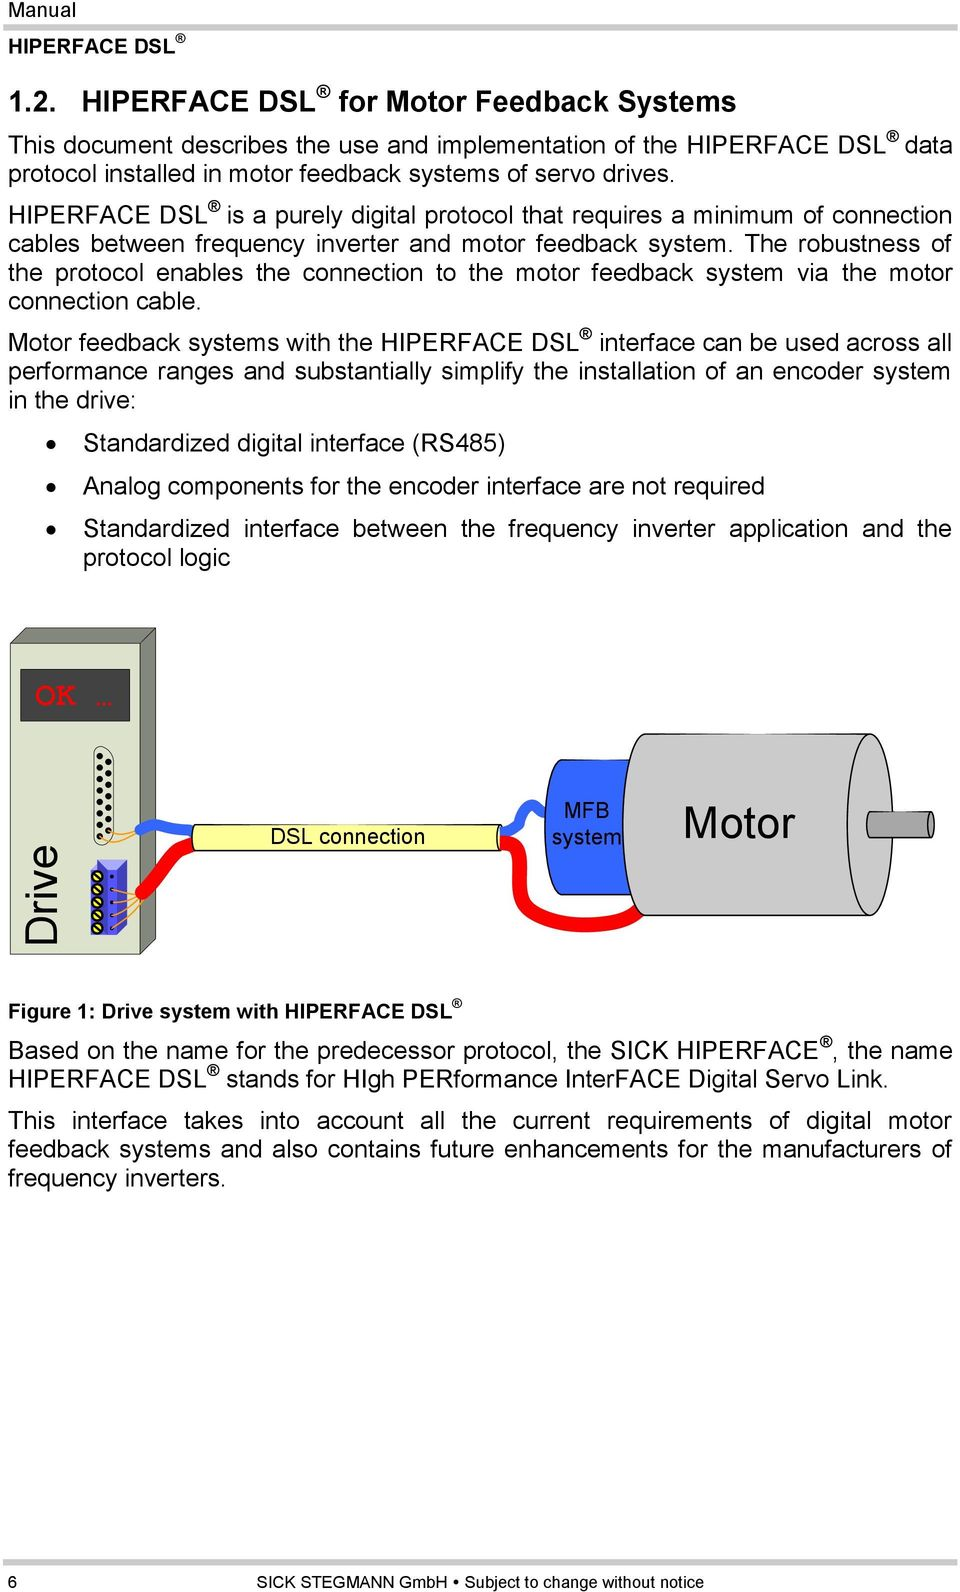 medium resolution of the robustness of the protocol enables the connection to the motor feedback system via the motor